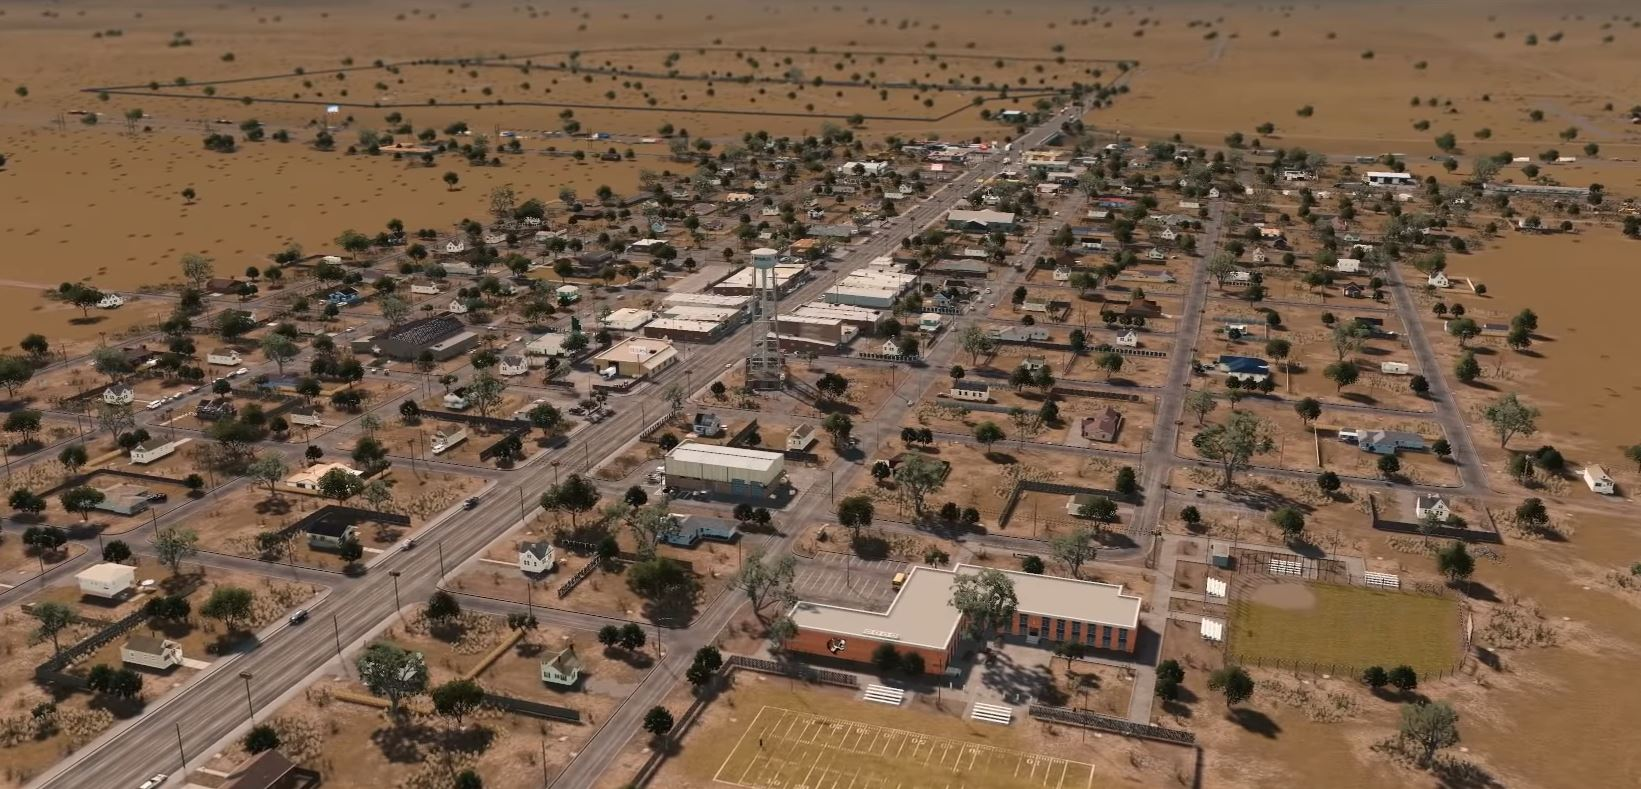 Watch this Cities: Skylines small-town Texas build, complete